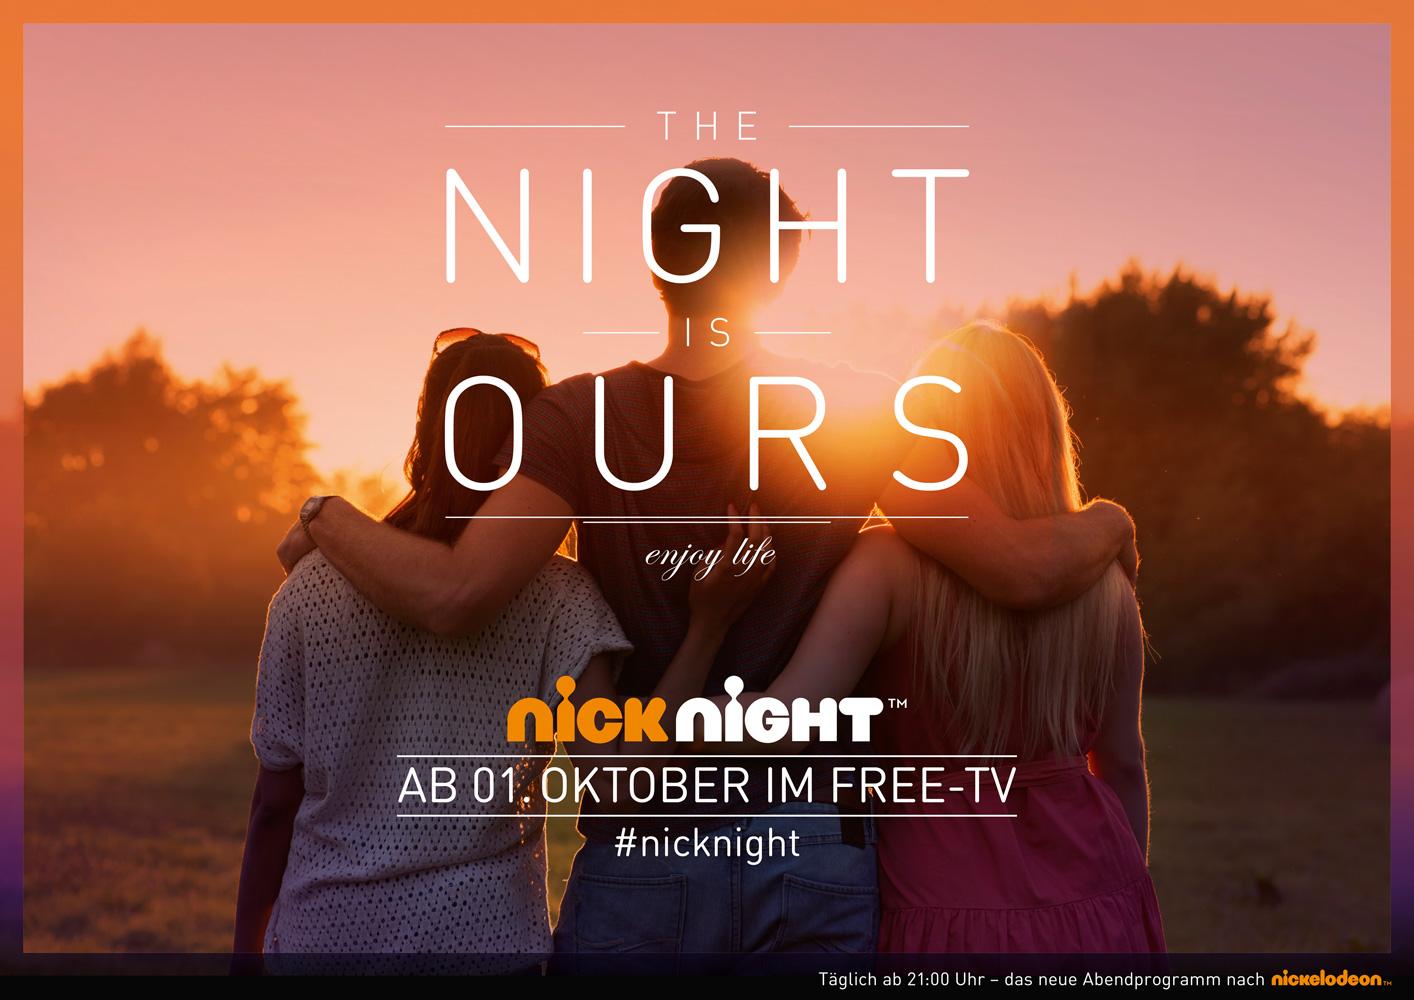 Nicknight_The_night_is_ours_©Kristina_Steiner